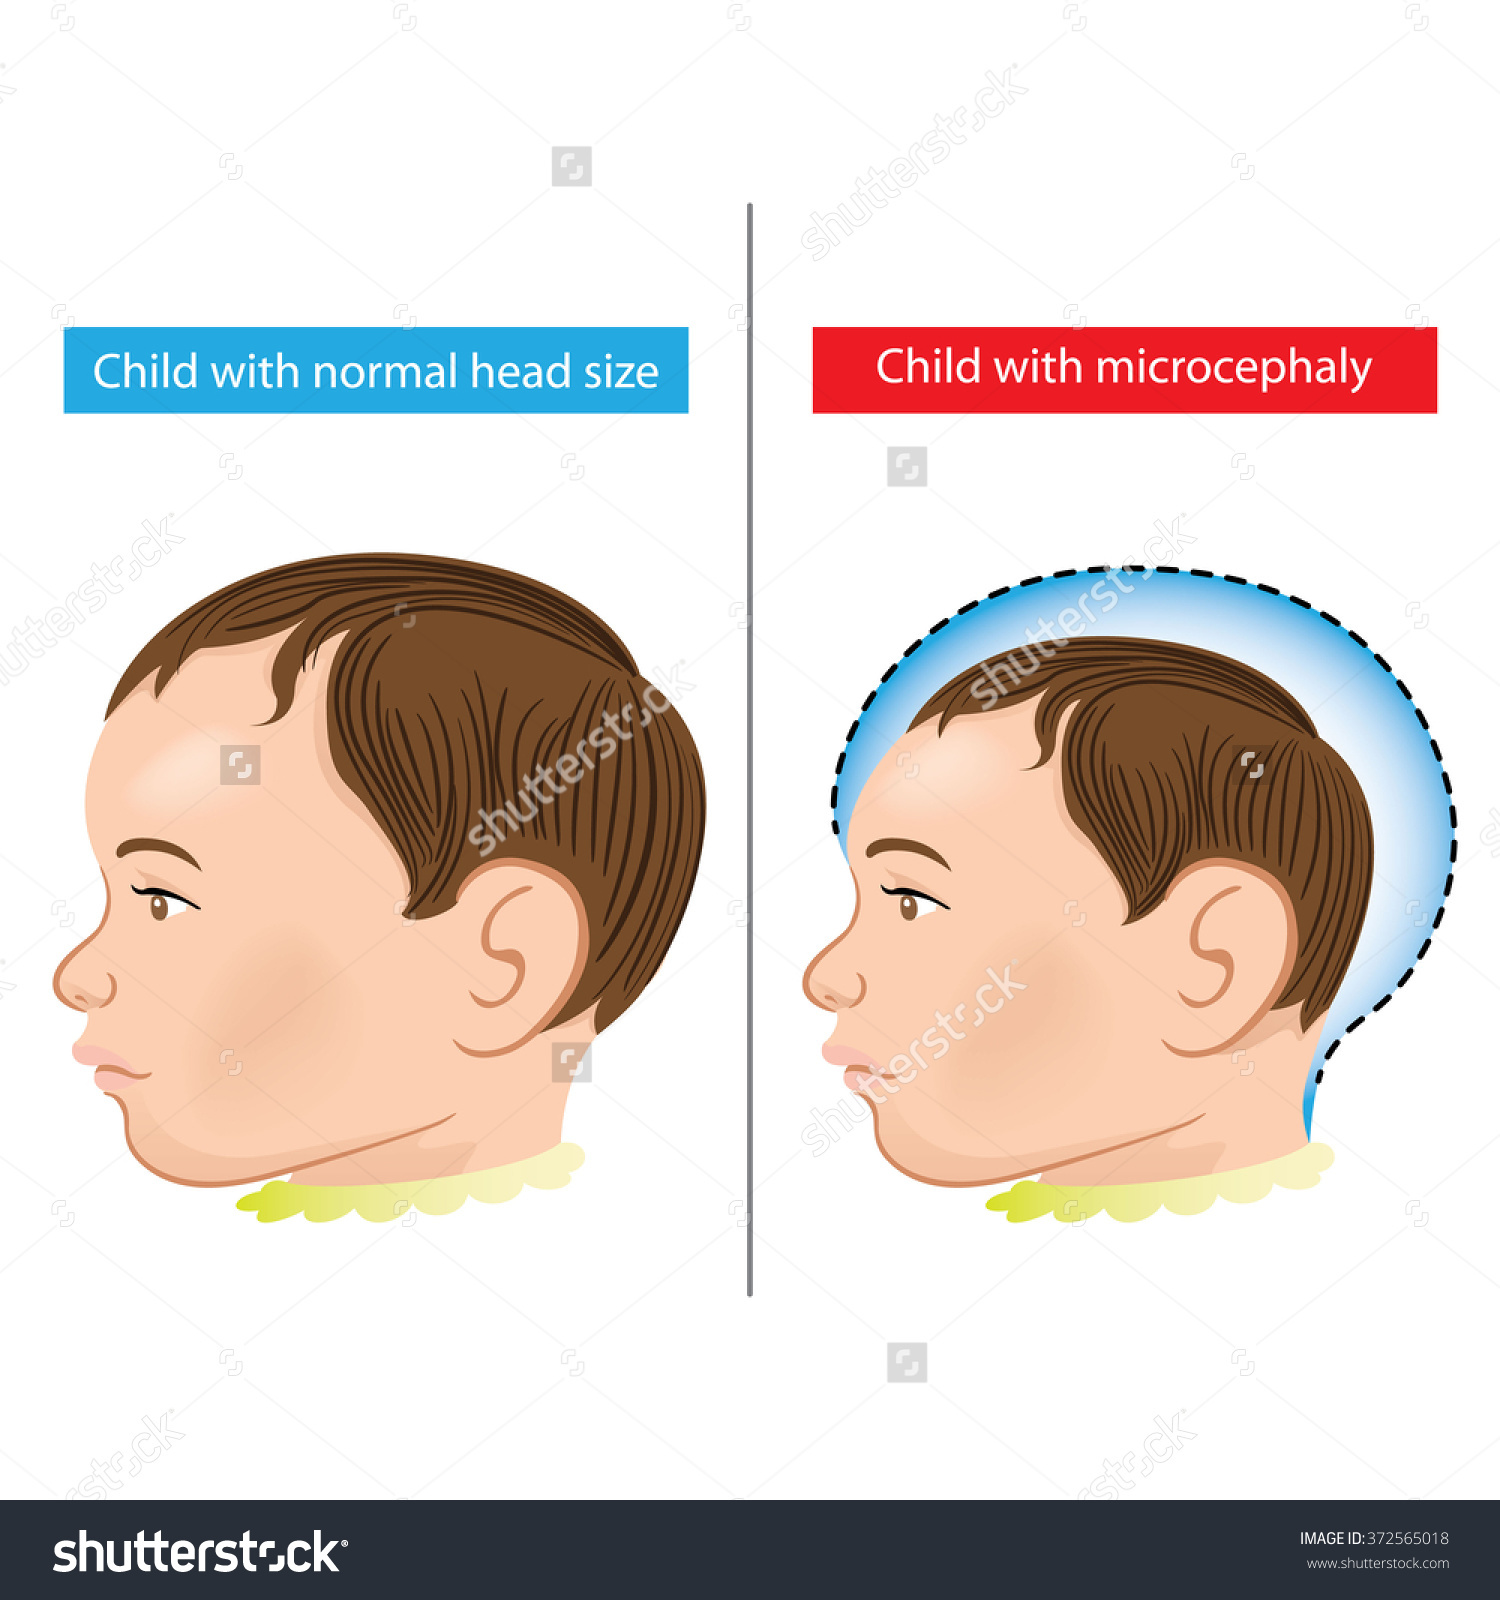 Illustration Newborn Baby Microcephaly Disease Caused Stock Vector.